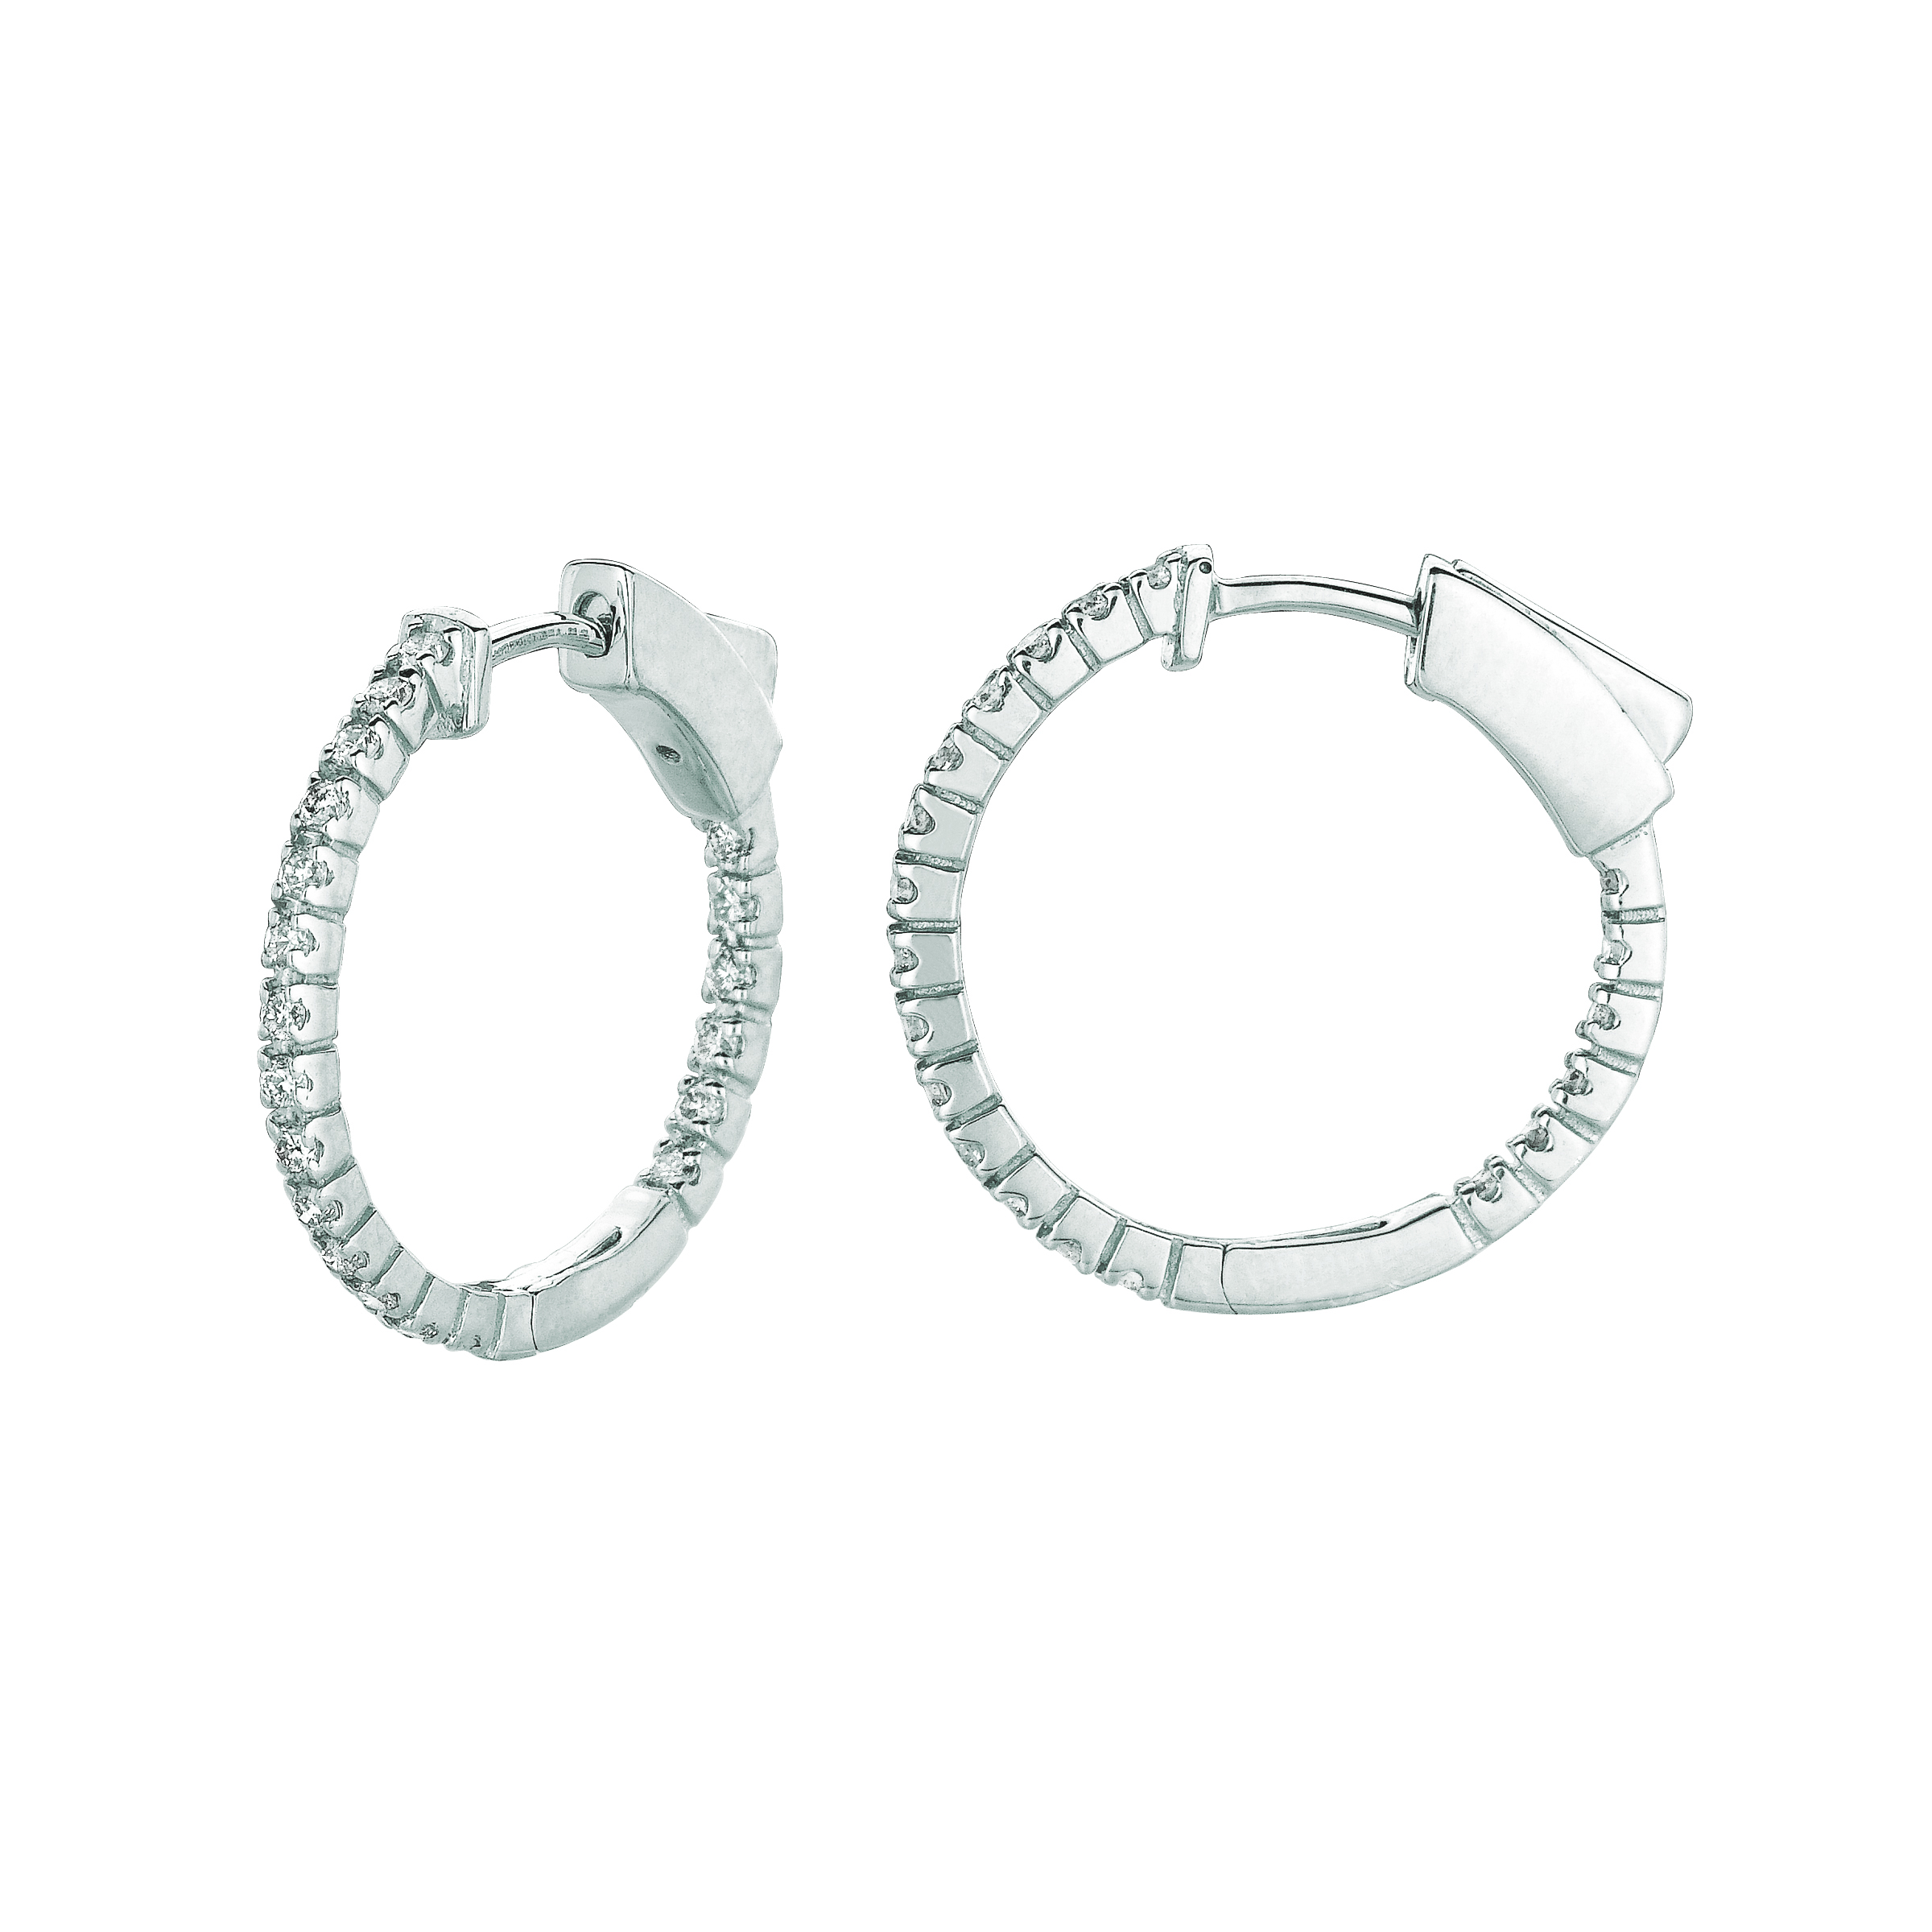 1 Pointer hoop earrings/patented snap lock. Price: $925.33